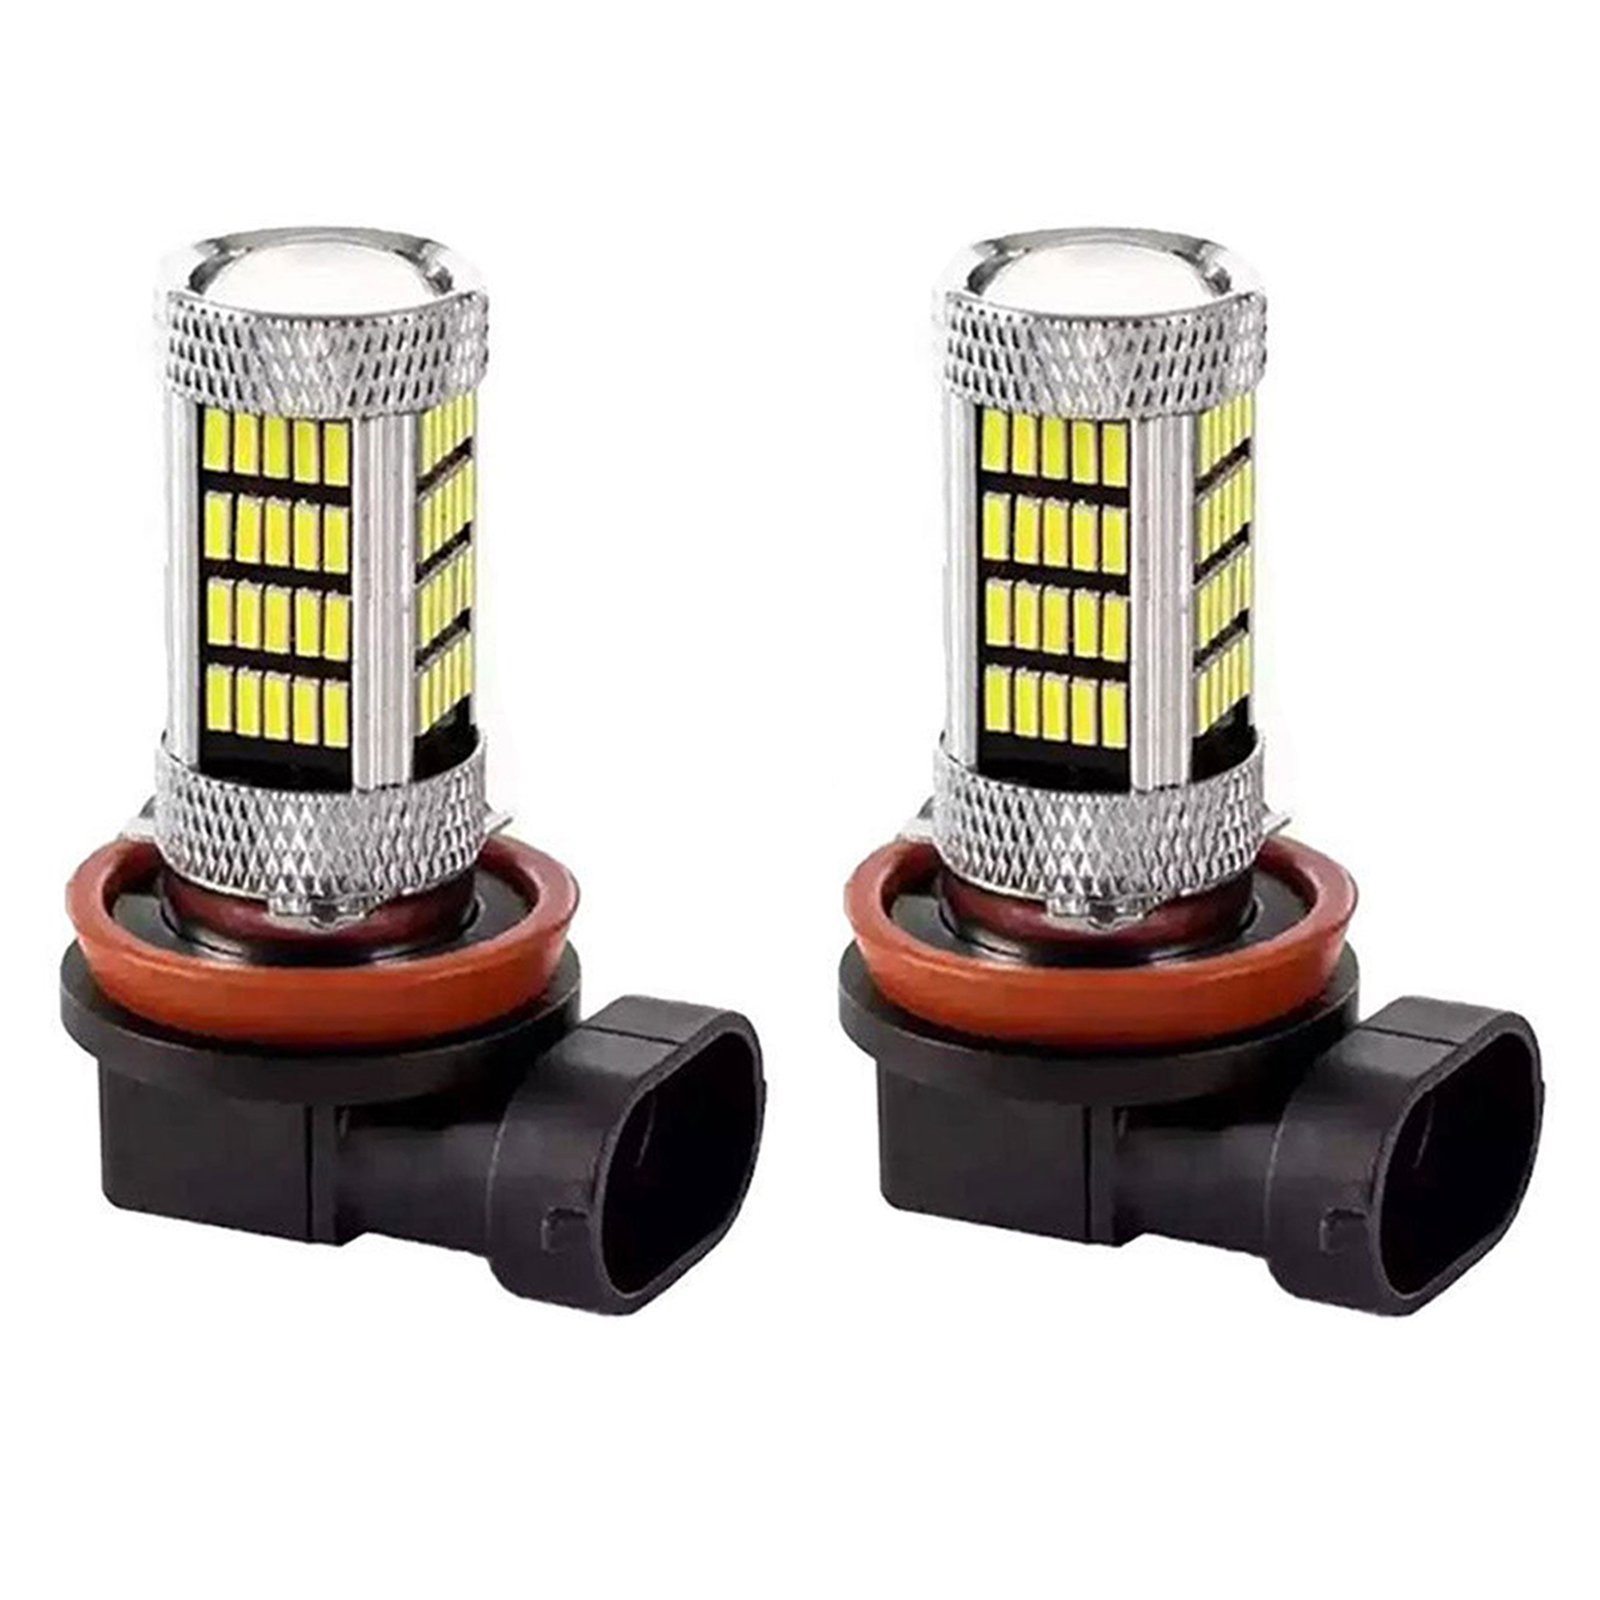 2-pack H11 H8 LED Headlight Bulbs Conversion Kit, 92 LED Bulb 4014-SMD for Car Truck Fog Lights Lamp, 6000K Xenon White